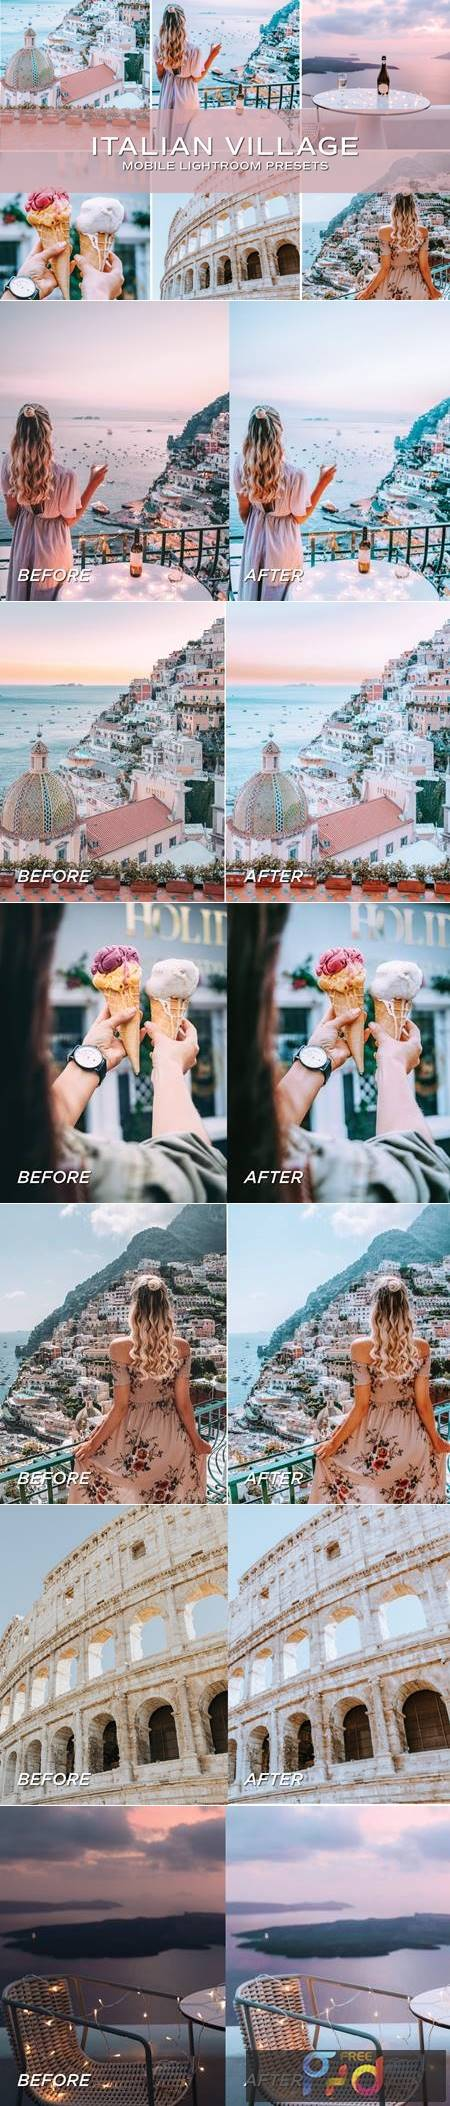 5 Italy Lightroom Presets 5699006 1